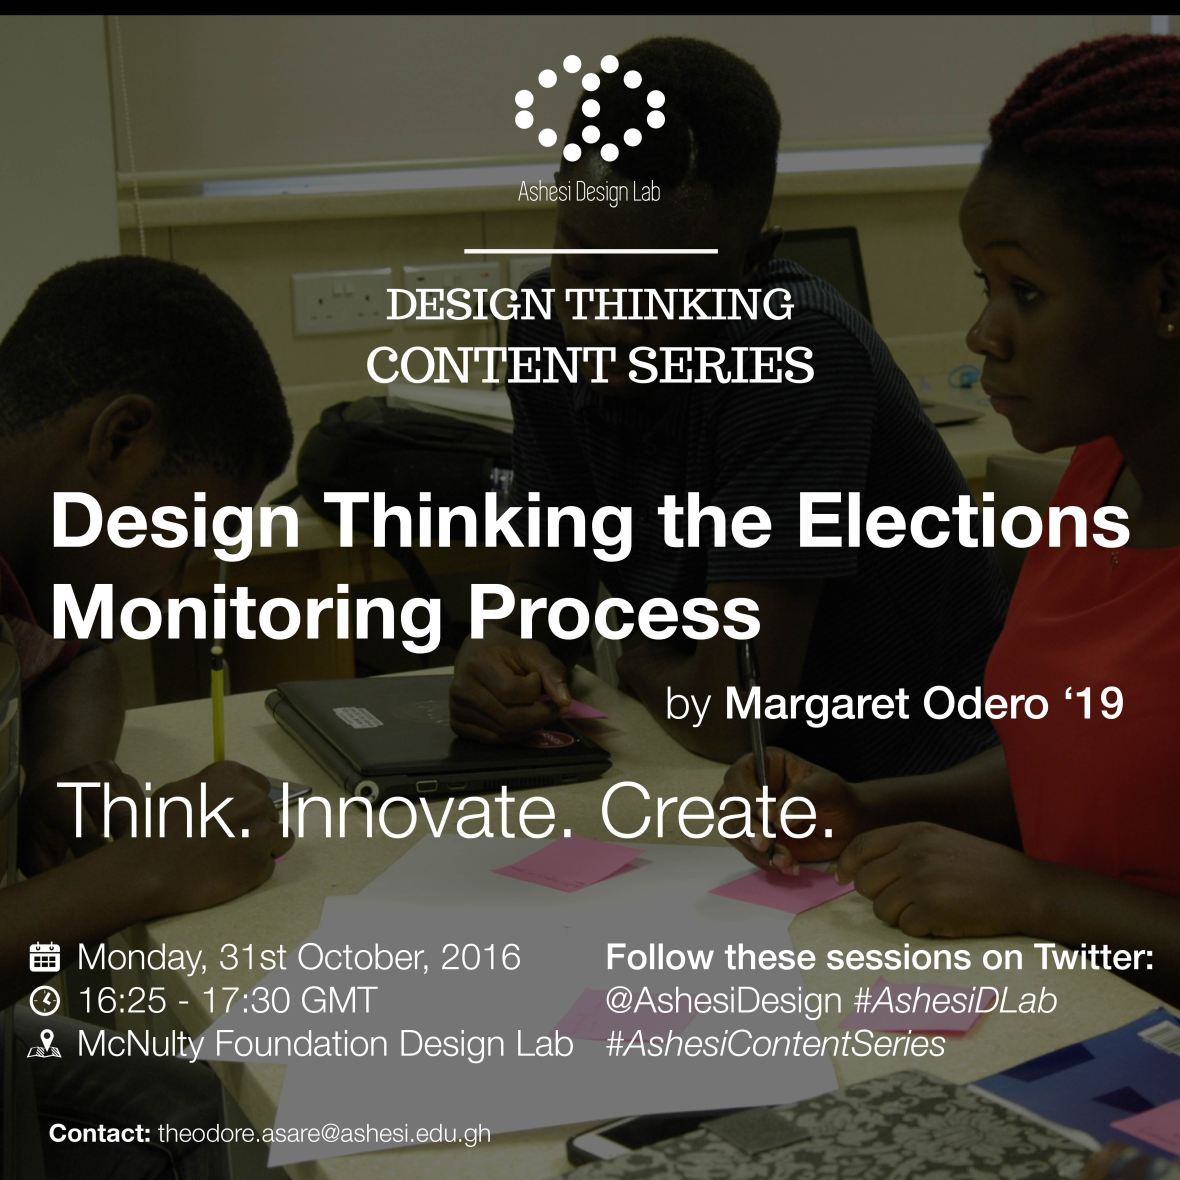 ashesi-dlab-content-series-election-monitoring-01